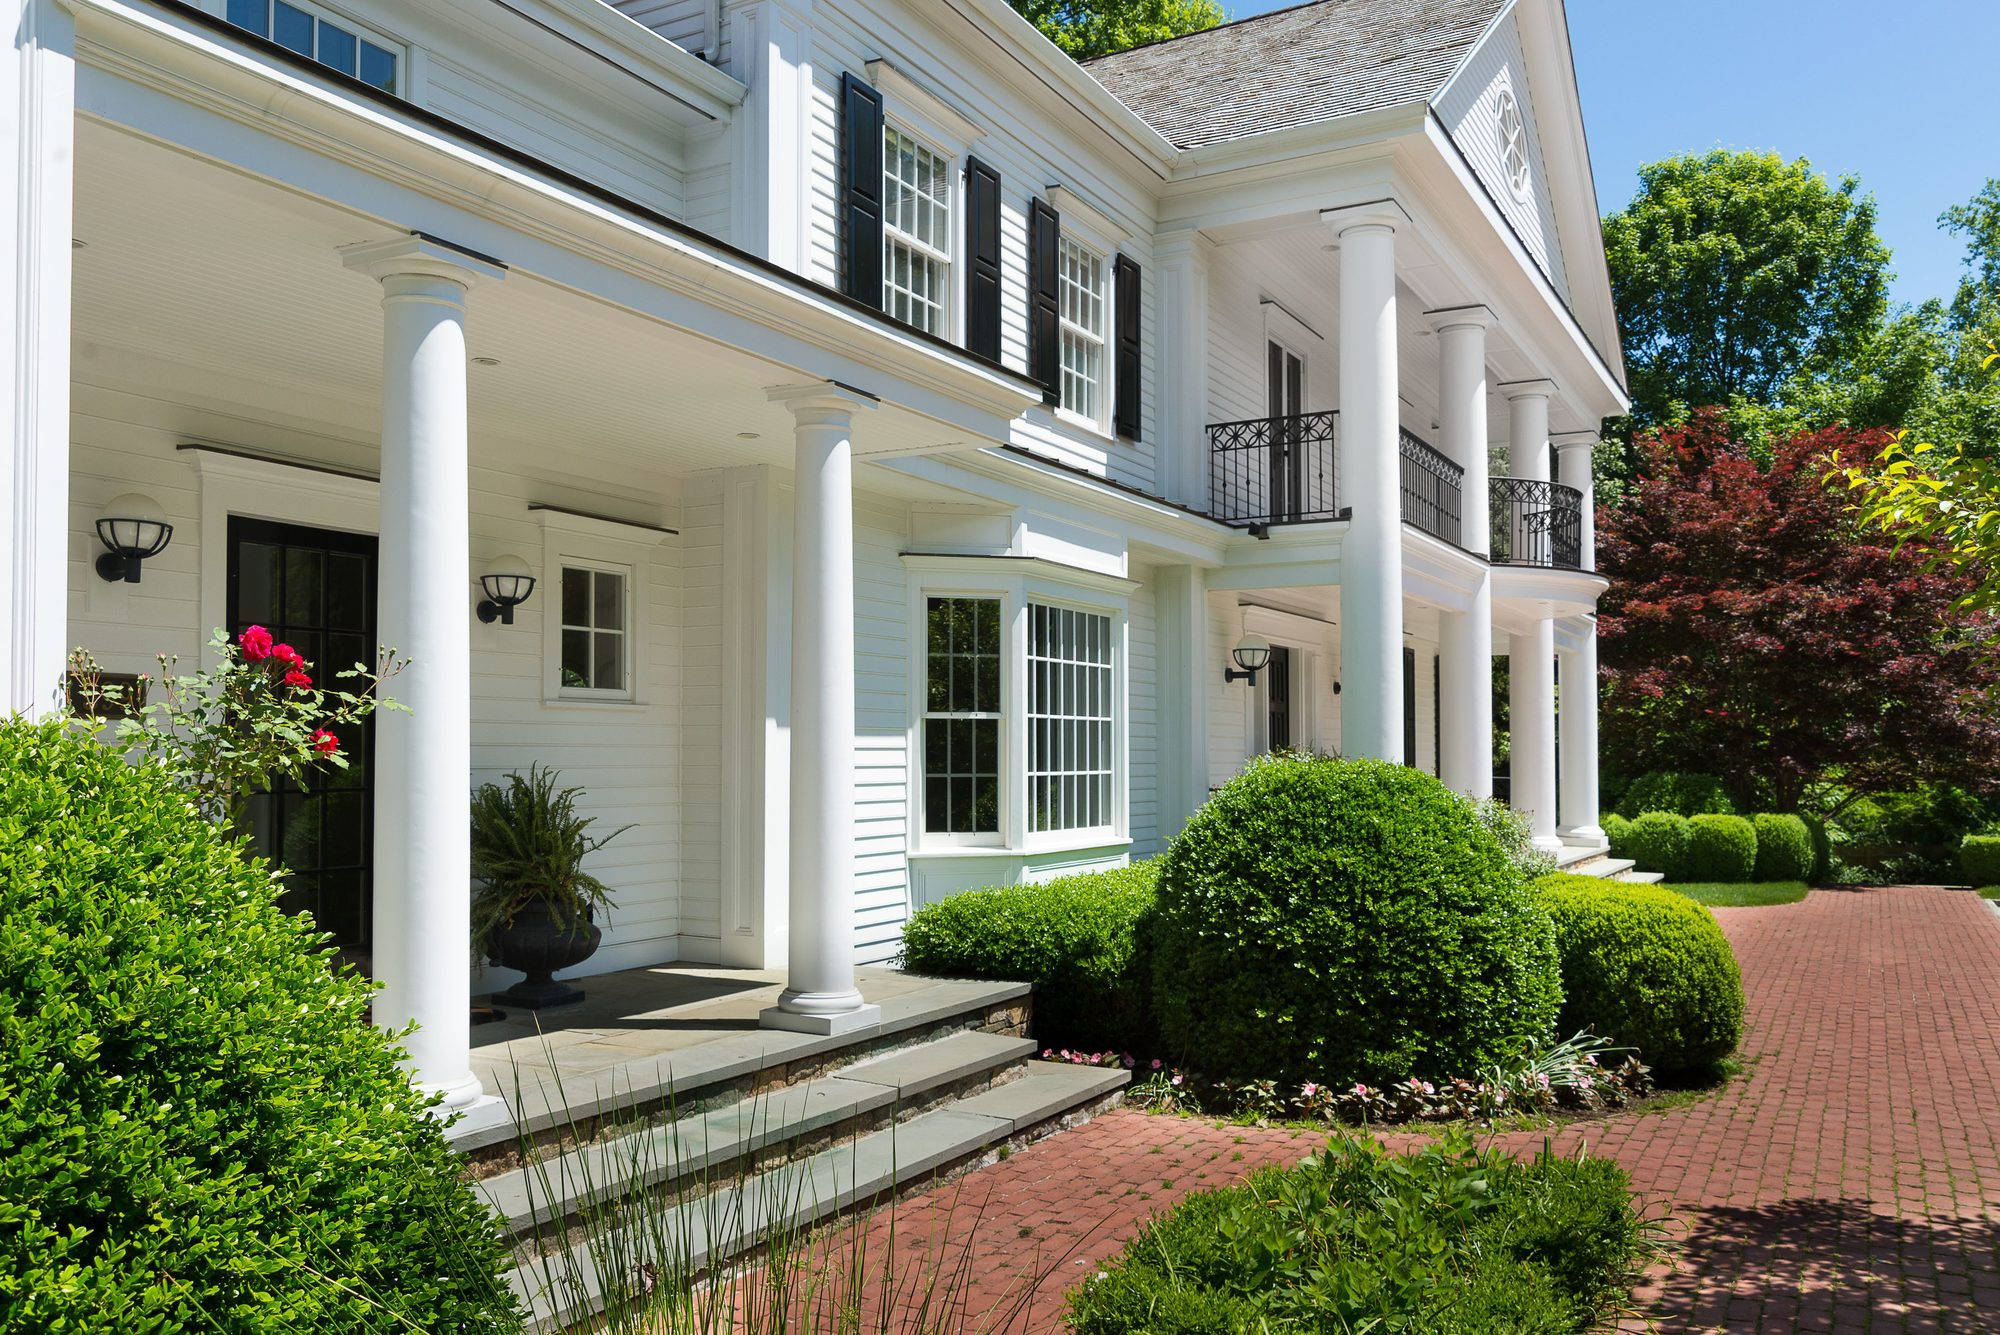 White colonial with white soffits and fascia including recessed LED lighting. 2nd Floor soffits include recessed LED lighting.